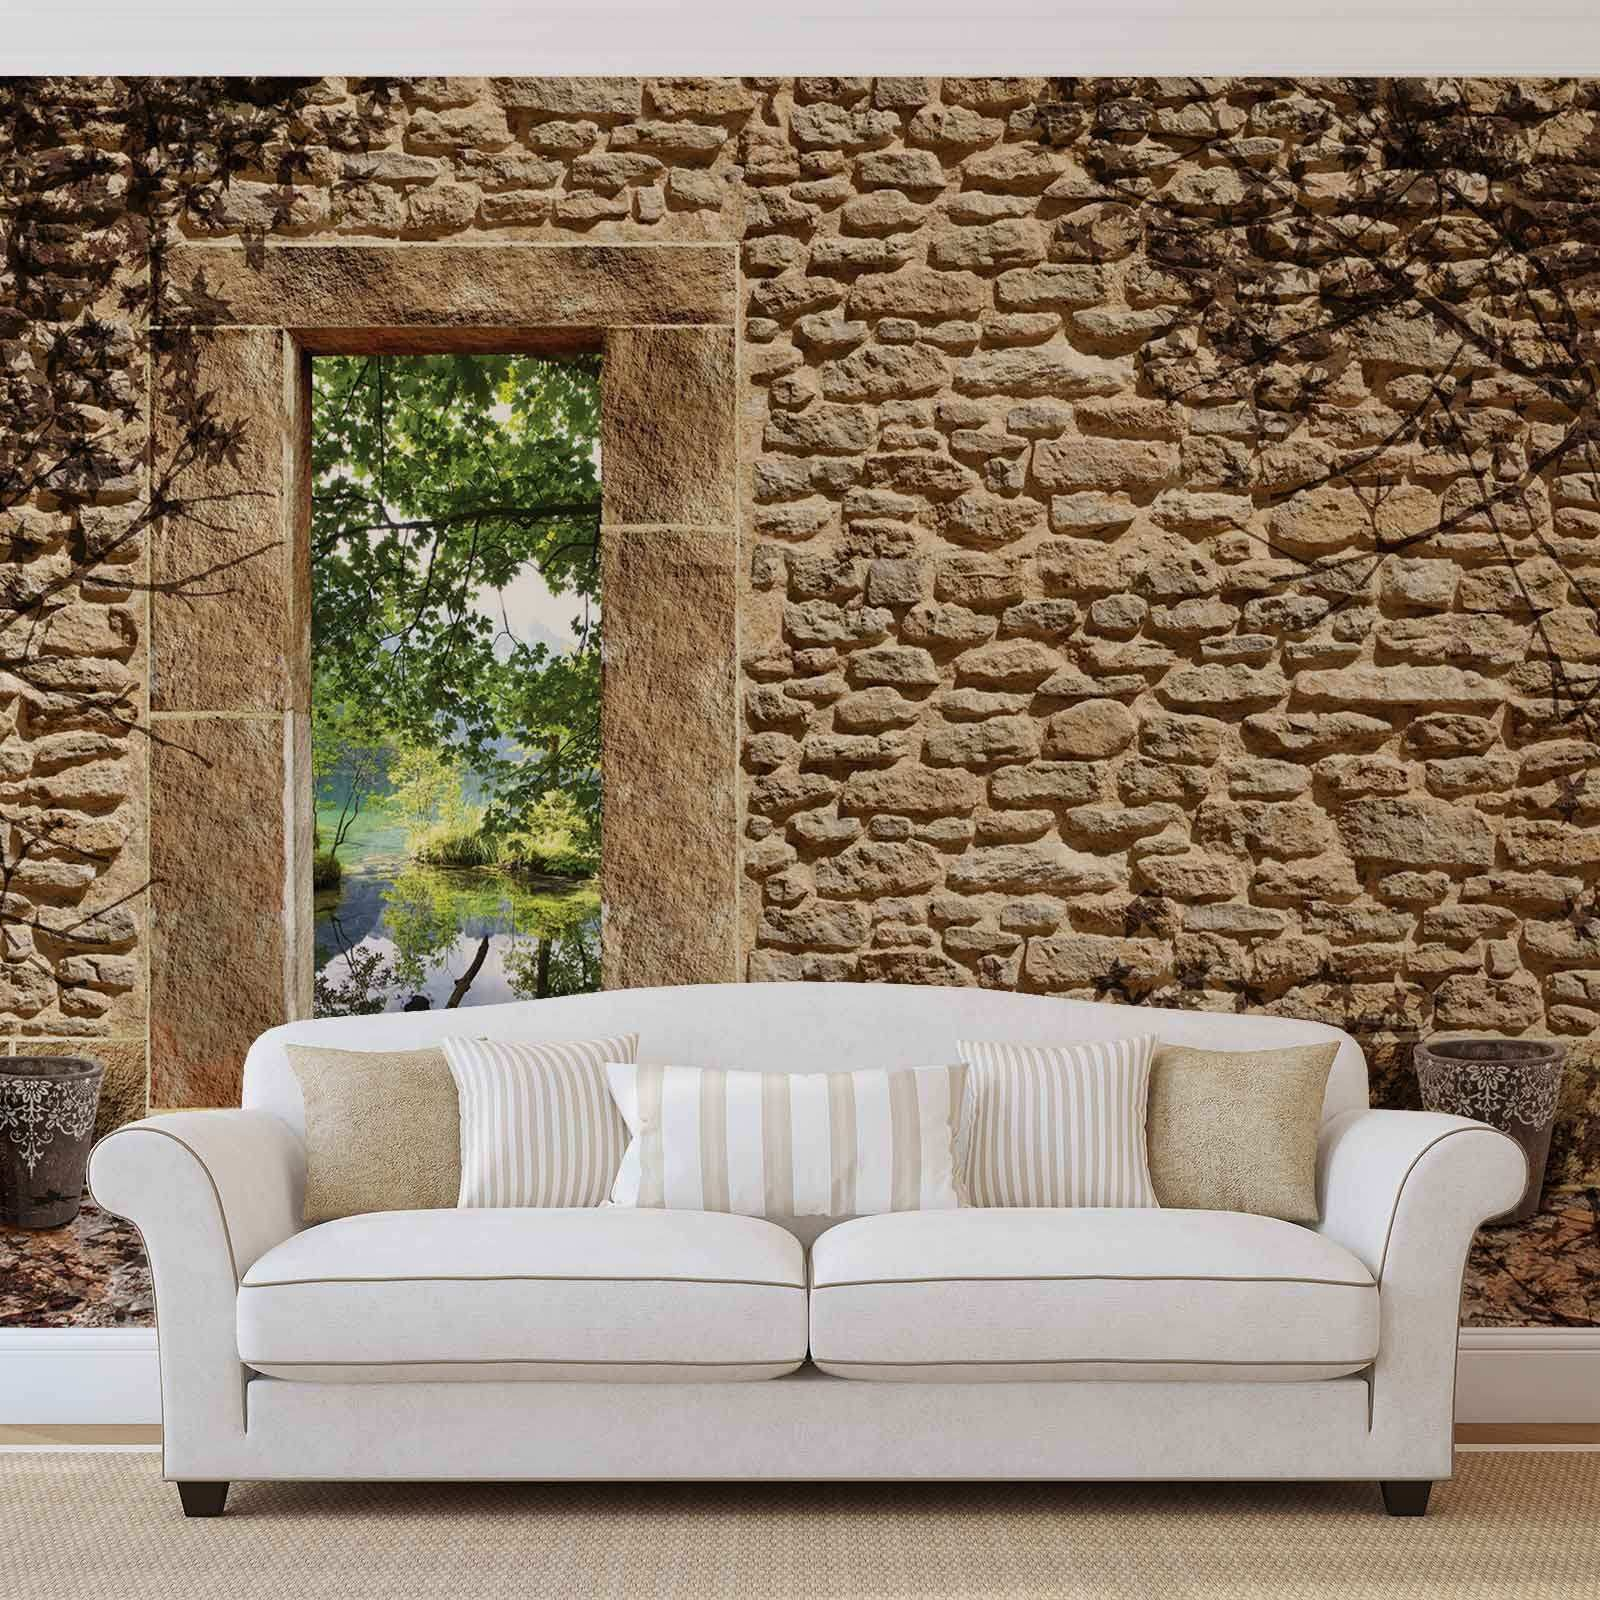 Details about WALL MURAL PHOTO WALLPAPER XXL Stone Wall Door Tree Shade WS